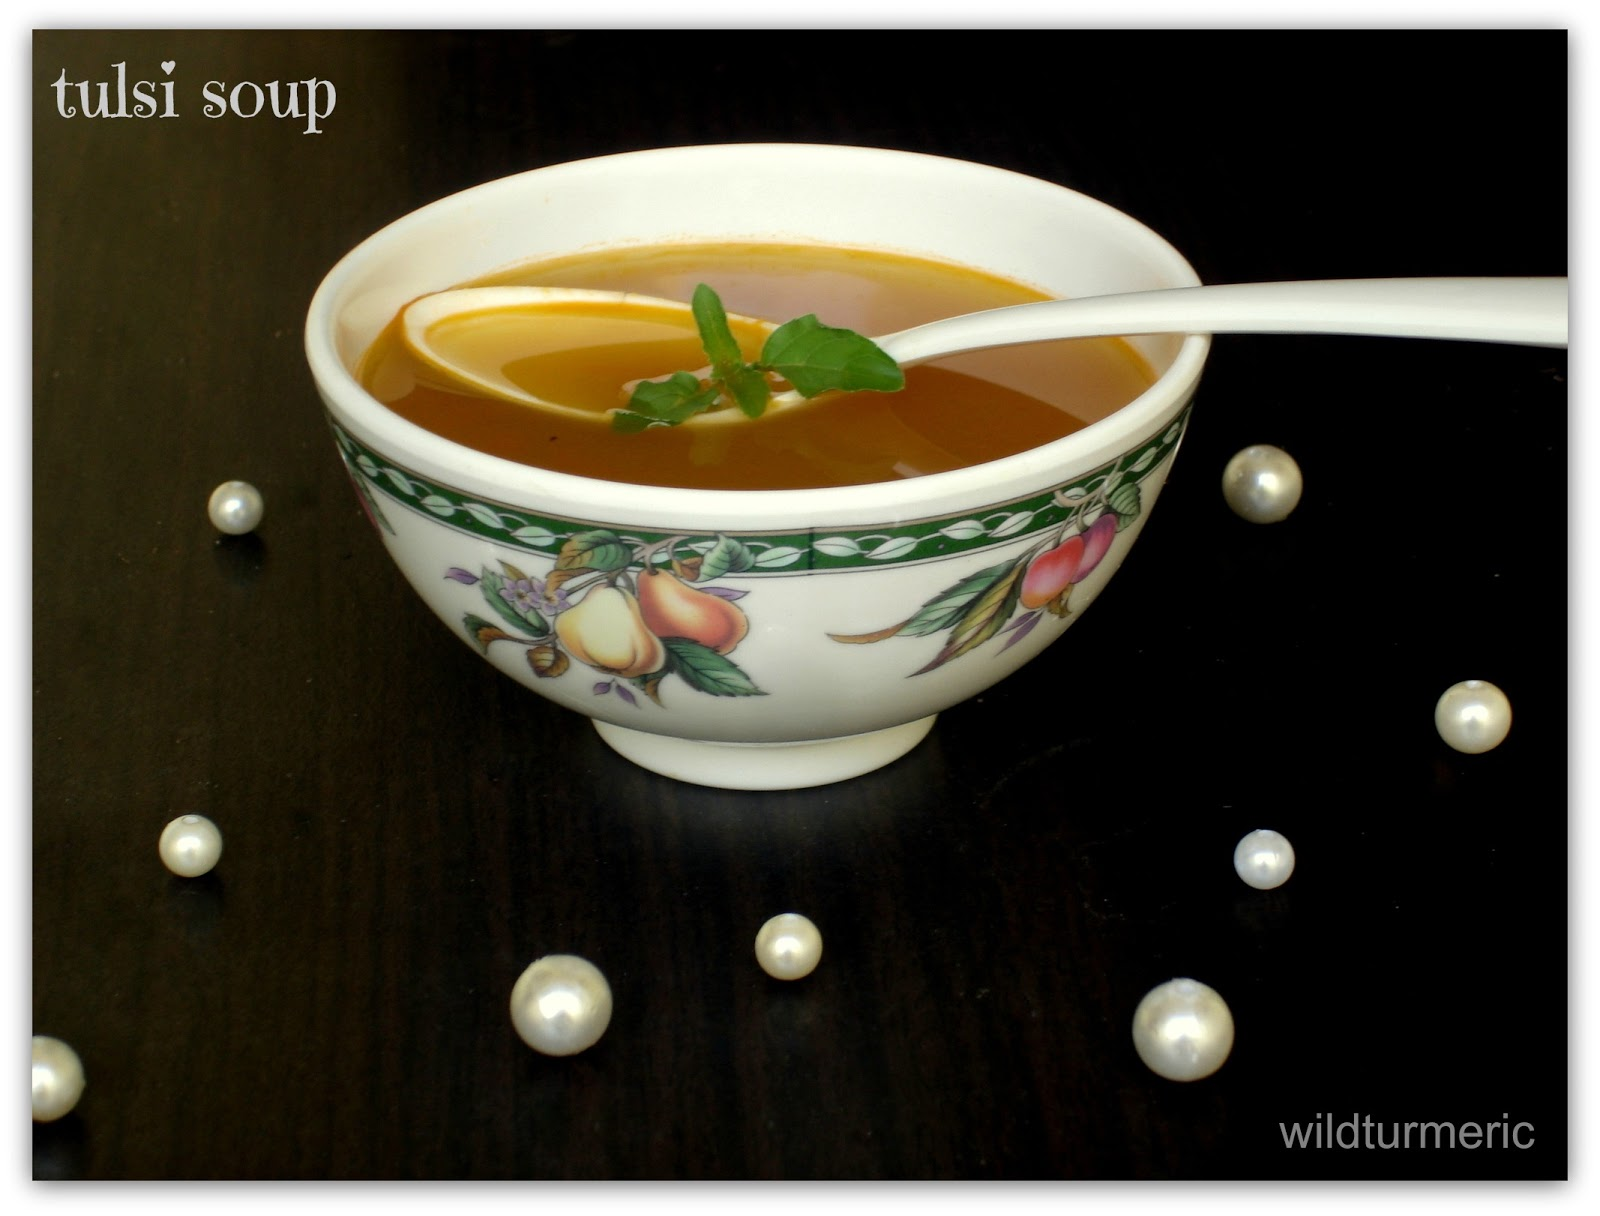 How To Use Tulsi For Cold & Cough: Tulsi Soup Recipe